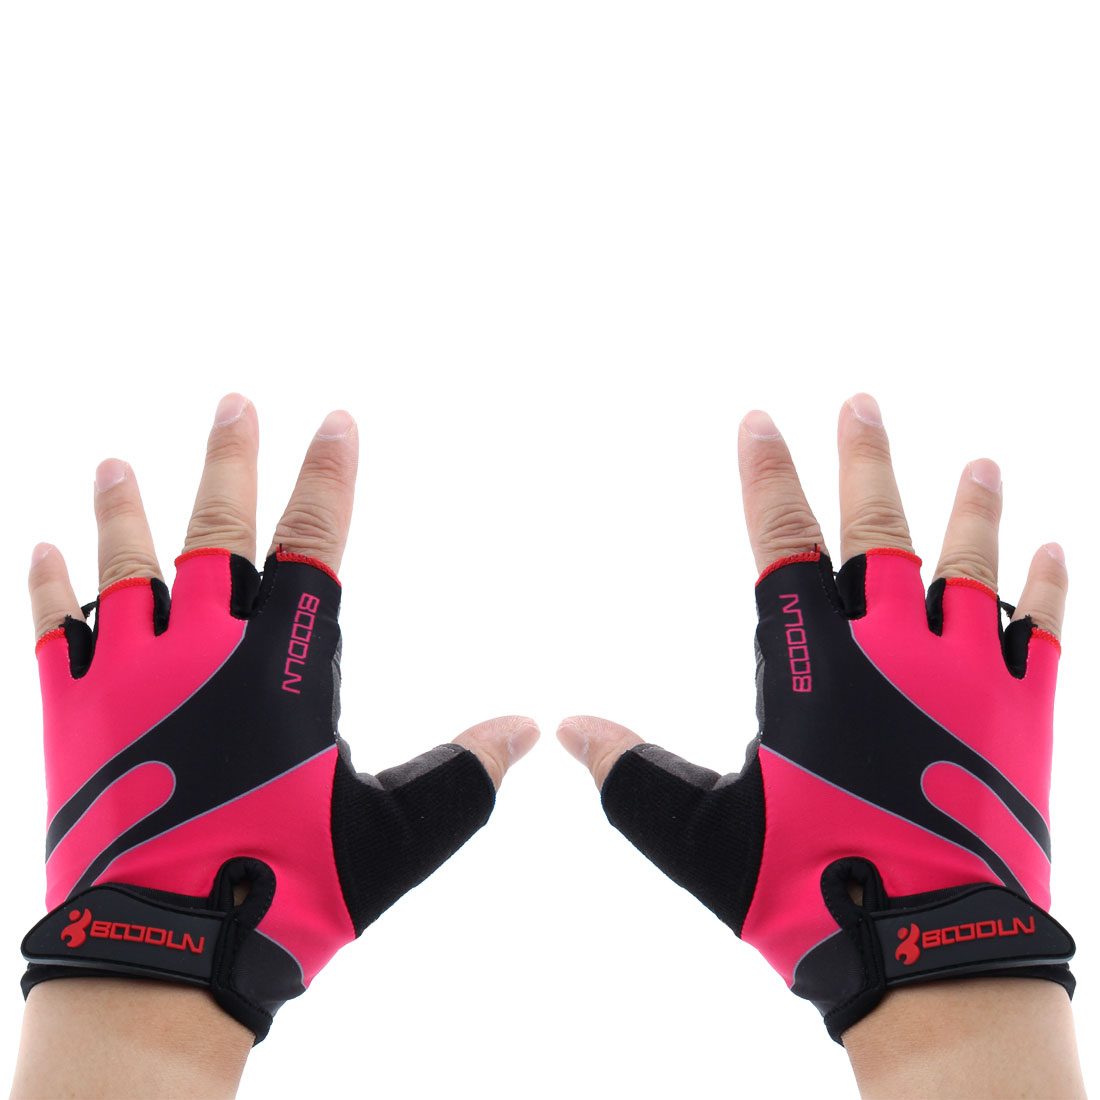 BOODUN Authorized Polyester Exercise Sports Lifting Training Bodybuilding Wrist Protector Half Finger Fitness Gloves Fuchsia XXL Pair